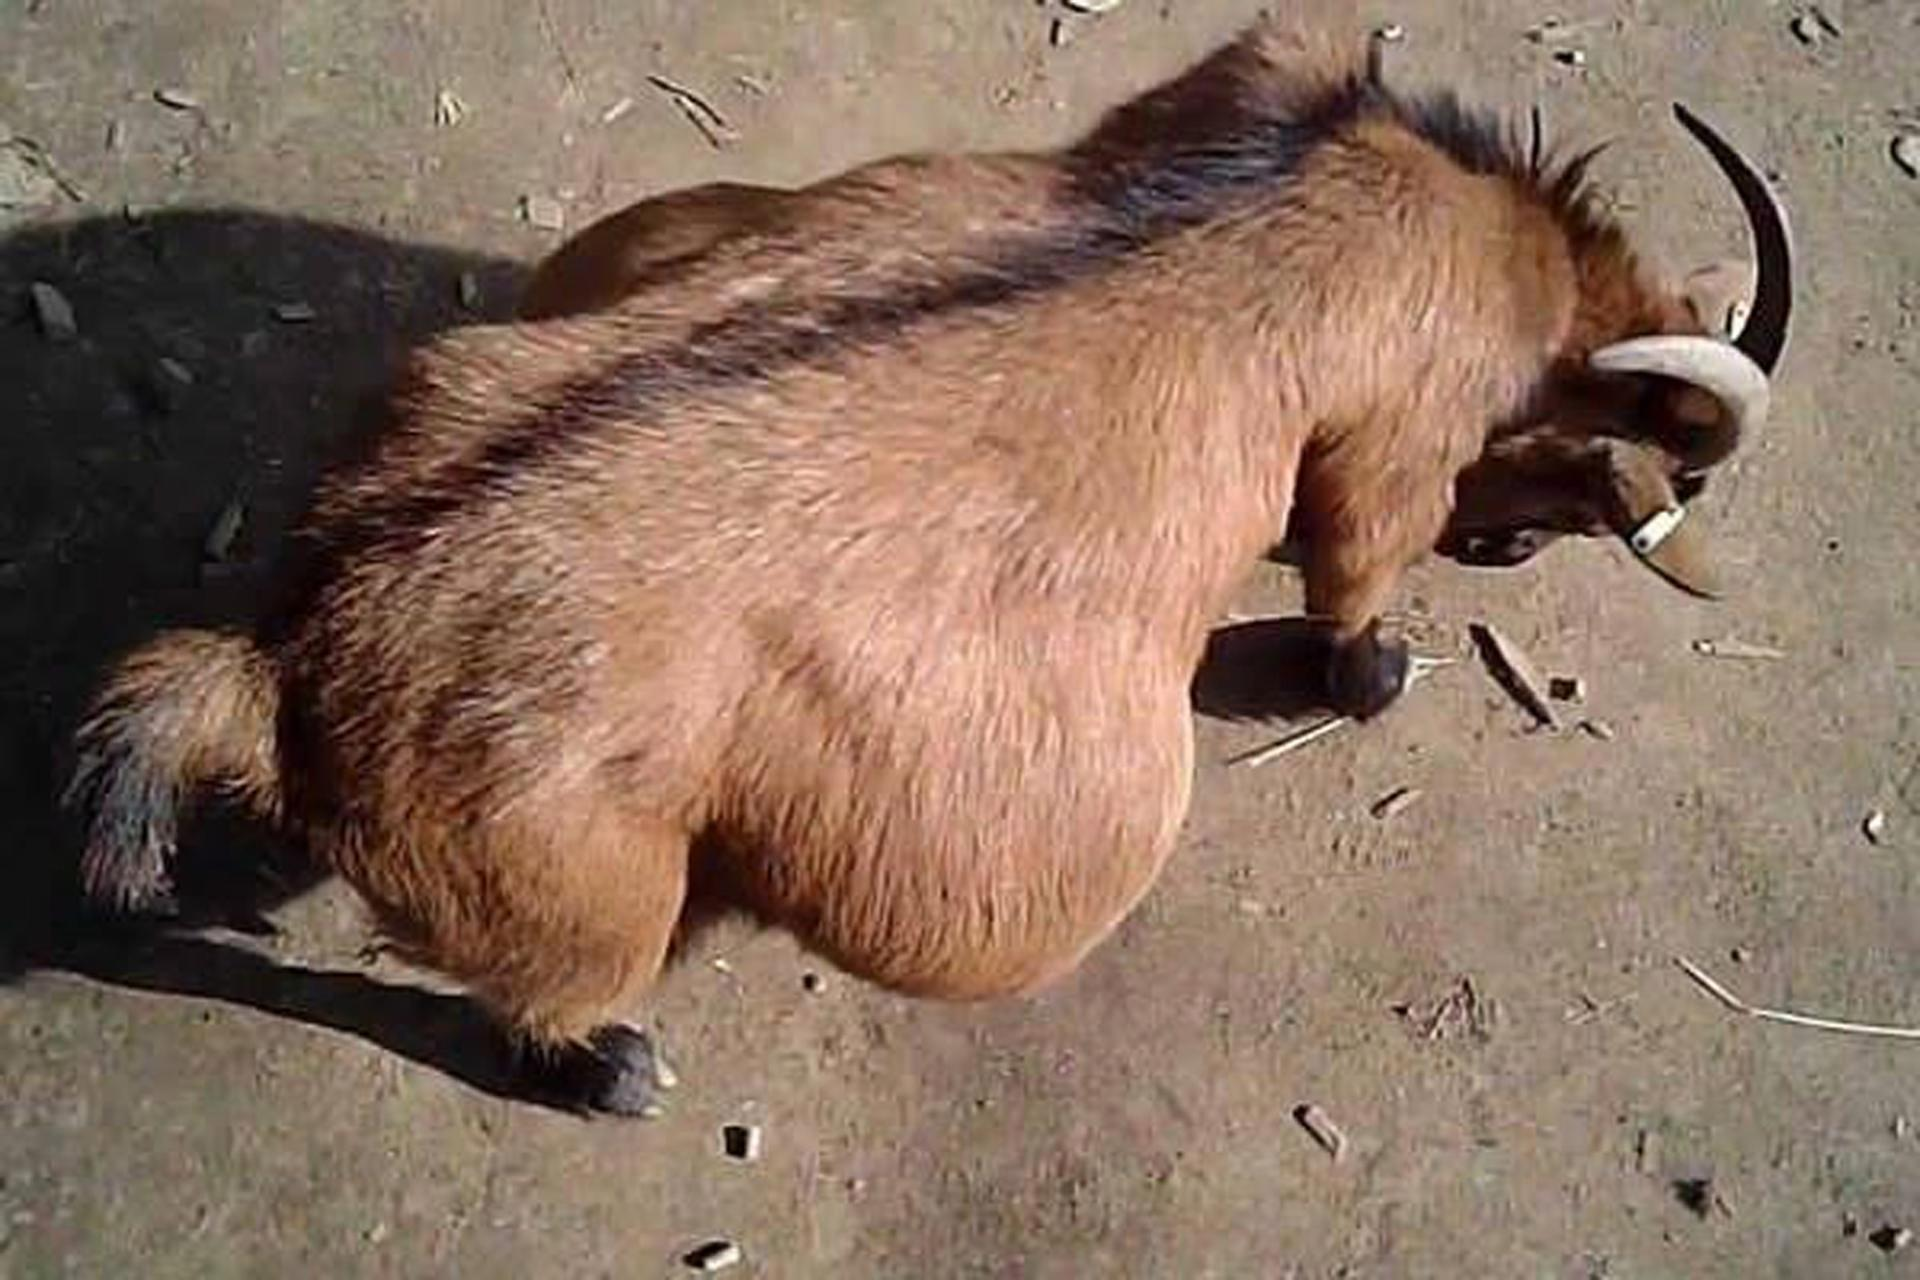 Animal sex weirdo gets 15 years hard labour for raping PREGNANT GOAT in Zambia